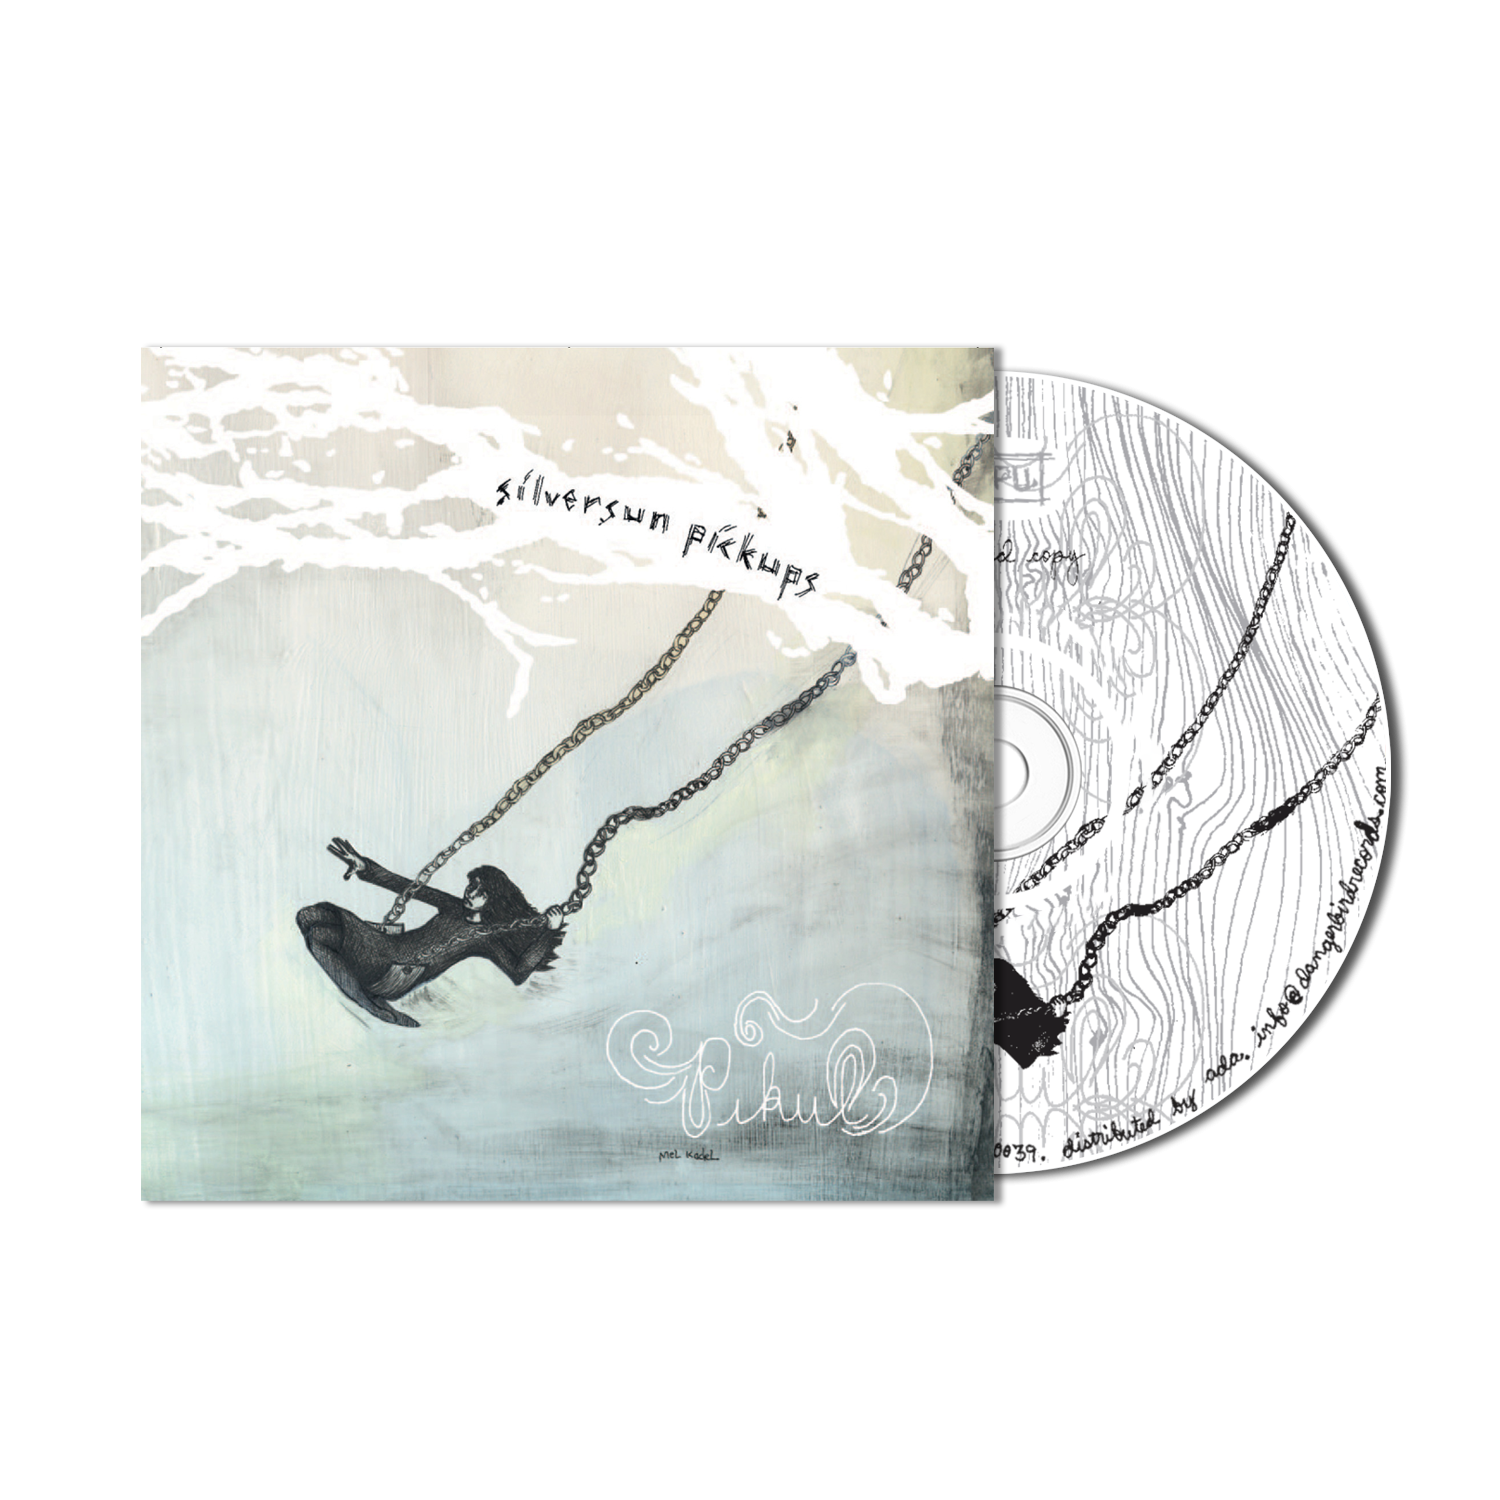 Silversun Pickups - Pikul - CD